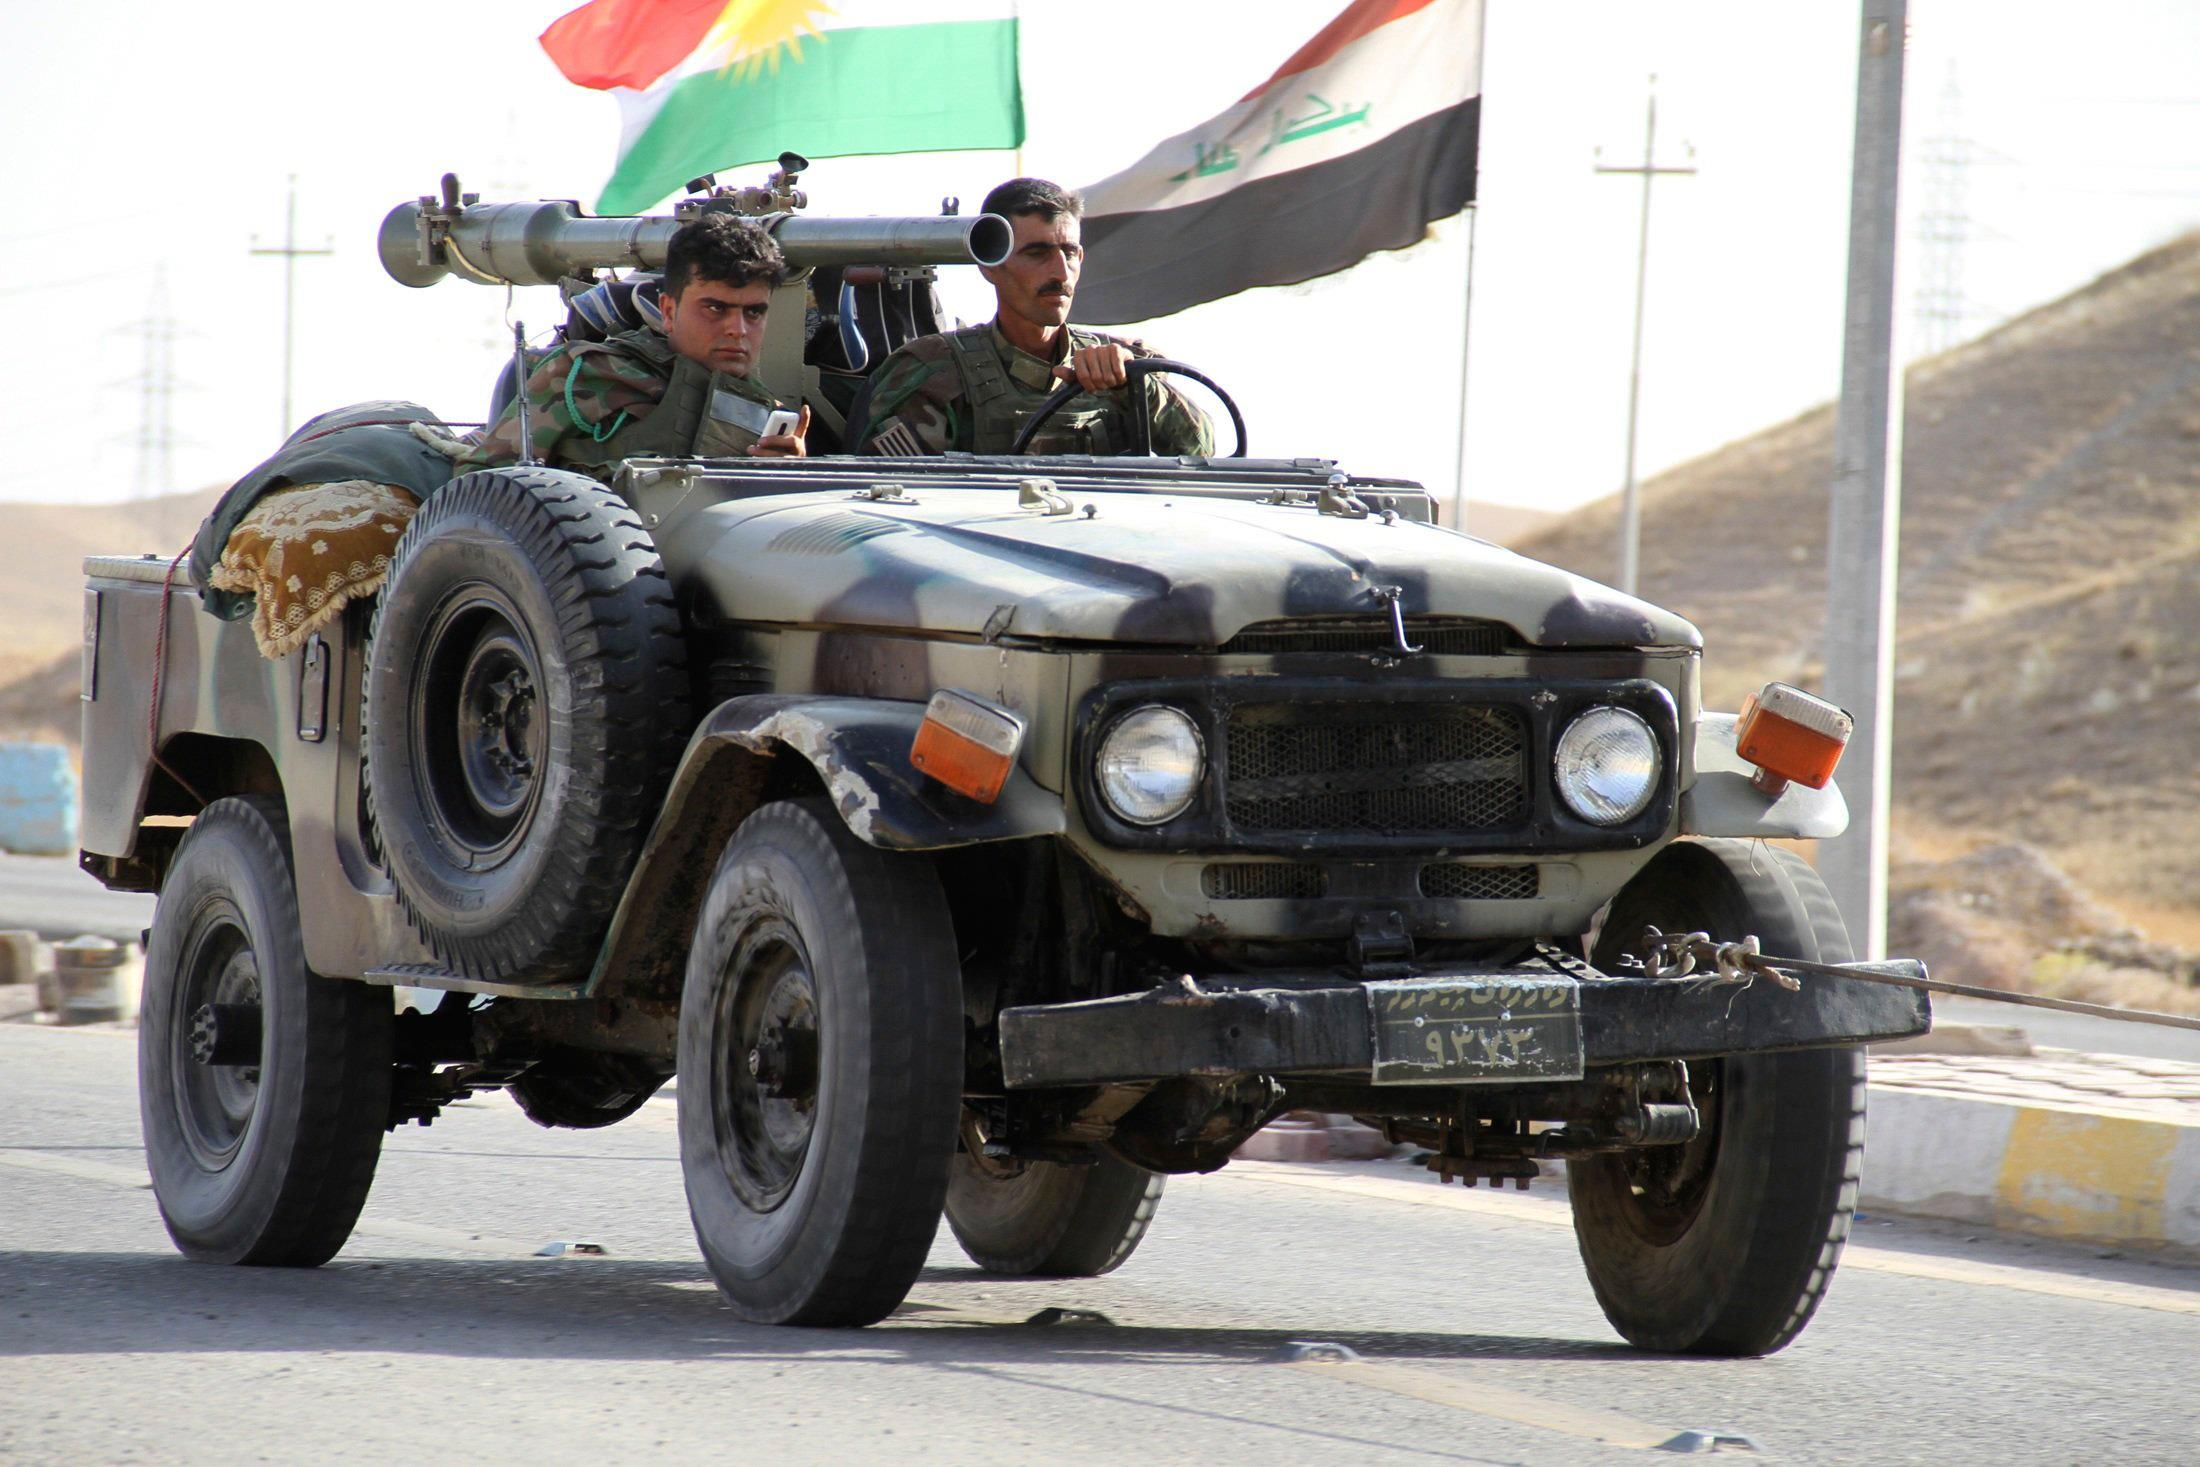 Image: Members of Kurdish security forces travel in a vehicle during clashes with ISIL on the outskirts of Diyala